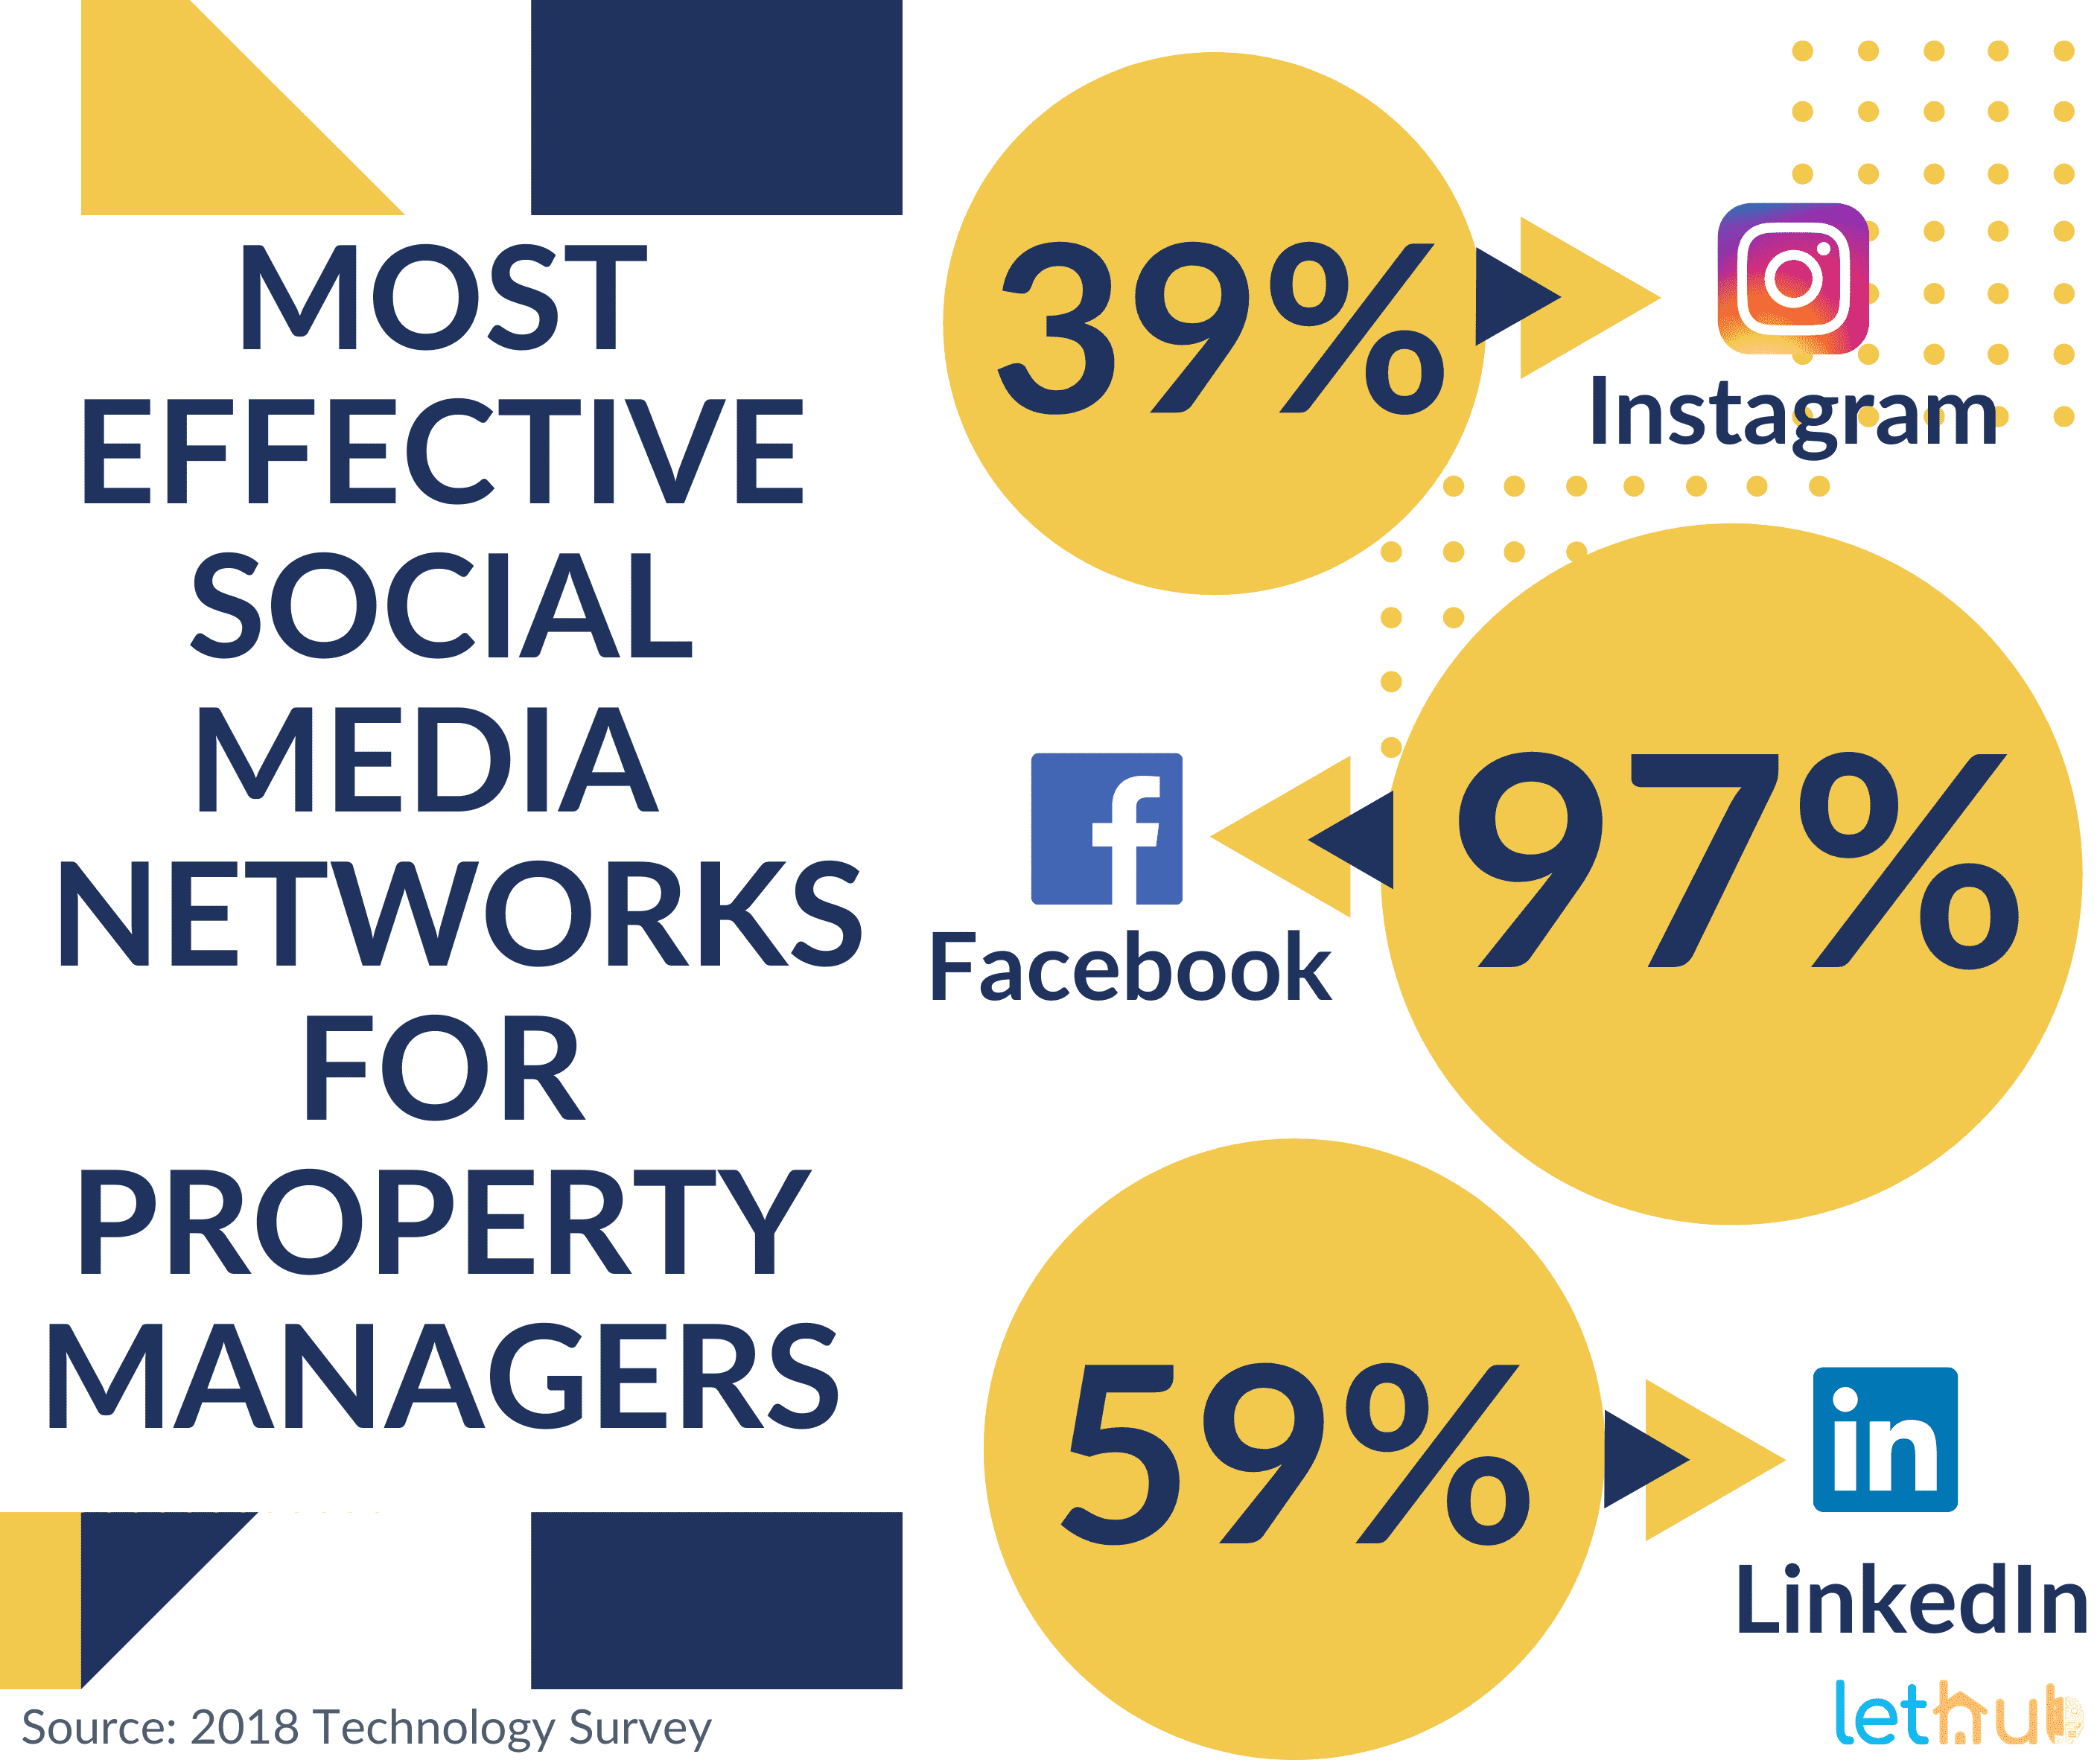 Social media networks for property managers